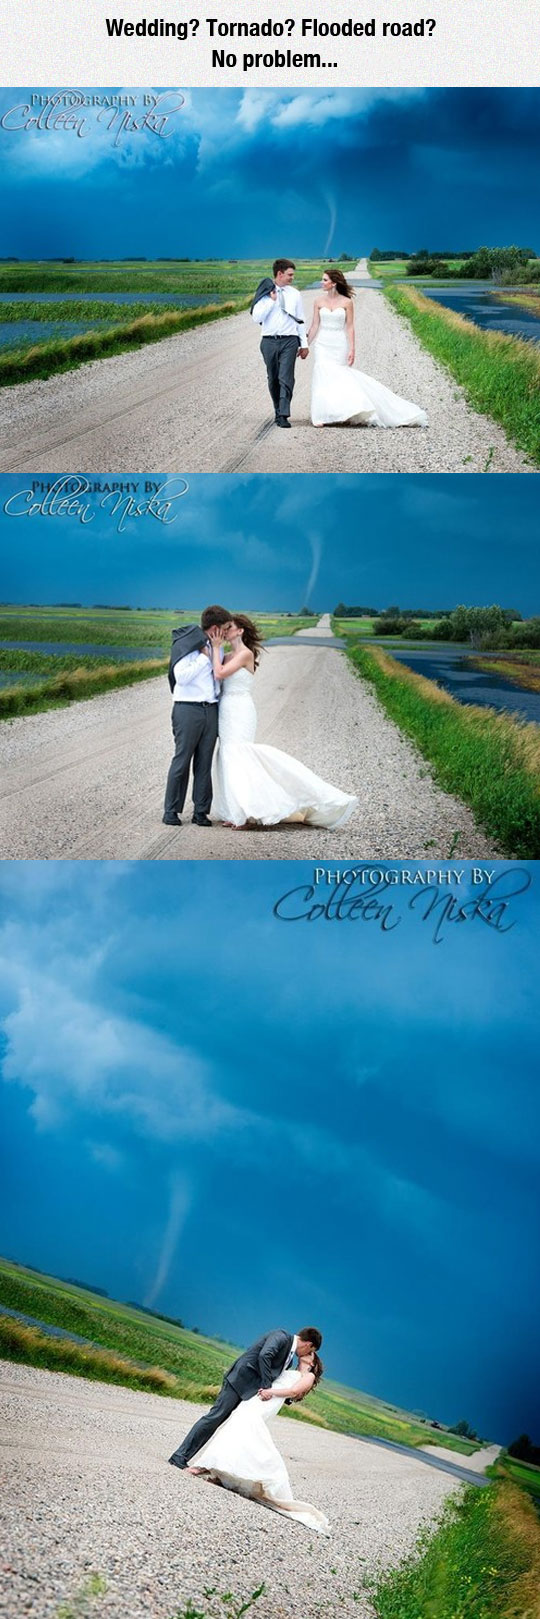 The Most Amazing Wedding Photo-Shoot Ever